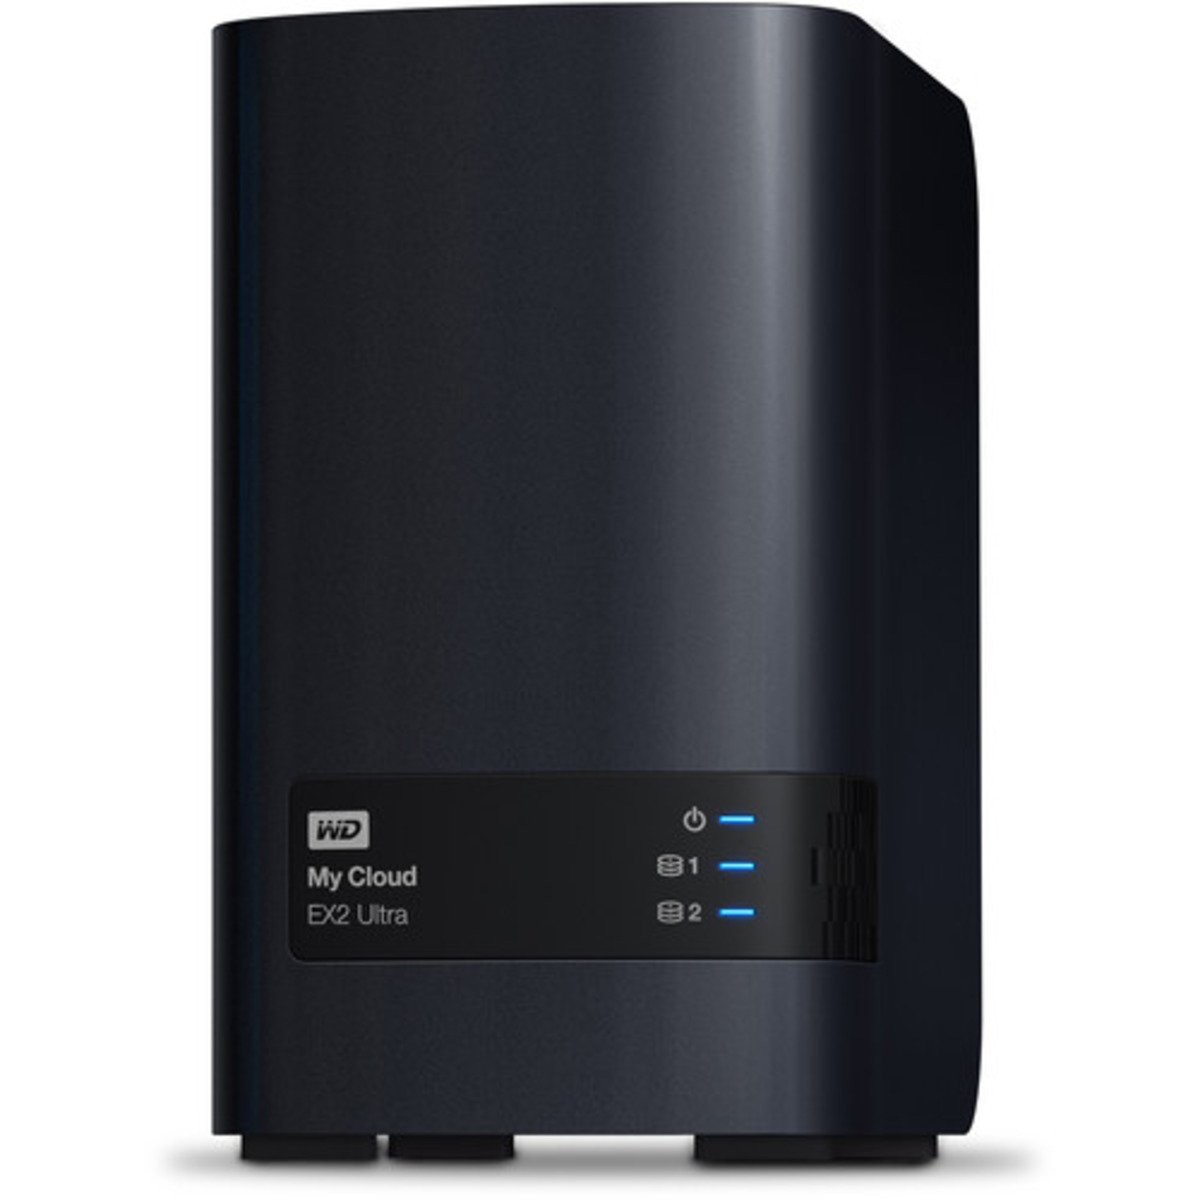 buy $382 Western Digital My Cloud EX2 Ultra 8tb Desktop NAS - Network Attached Storage Device 2x4000gb Western Digital Blue WD40EZRZ 3.5 5400rpm SATA 6Gb/s HDD CONSUMER Class Drives Installed - Burn-In Tested - nas headquarters buy network attached storage server device das new sale raid-5 free shipping usa My Cloud EX2 Ultra